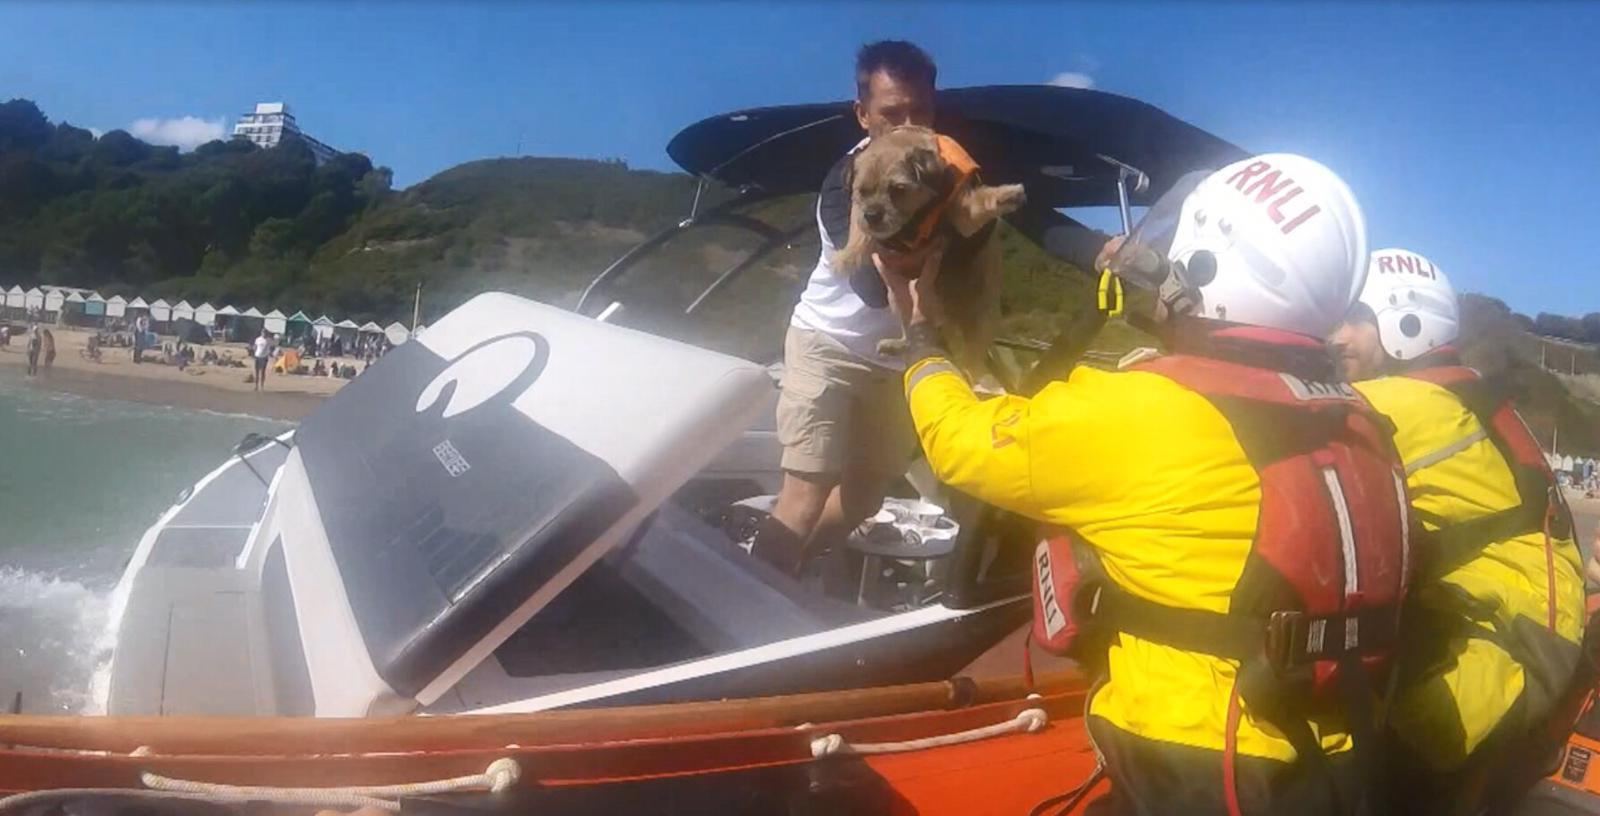 Four people and a dog rescued from sinking power boat on hectic day for RNLI